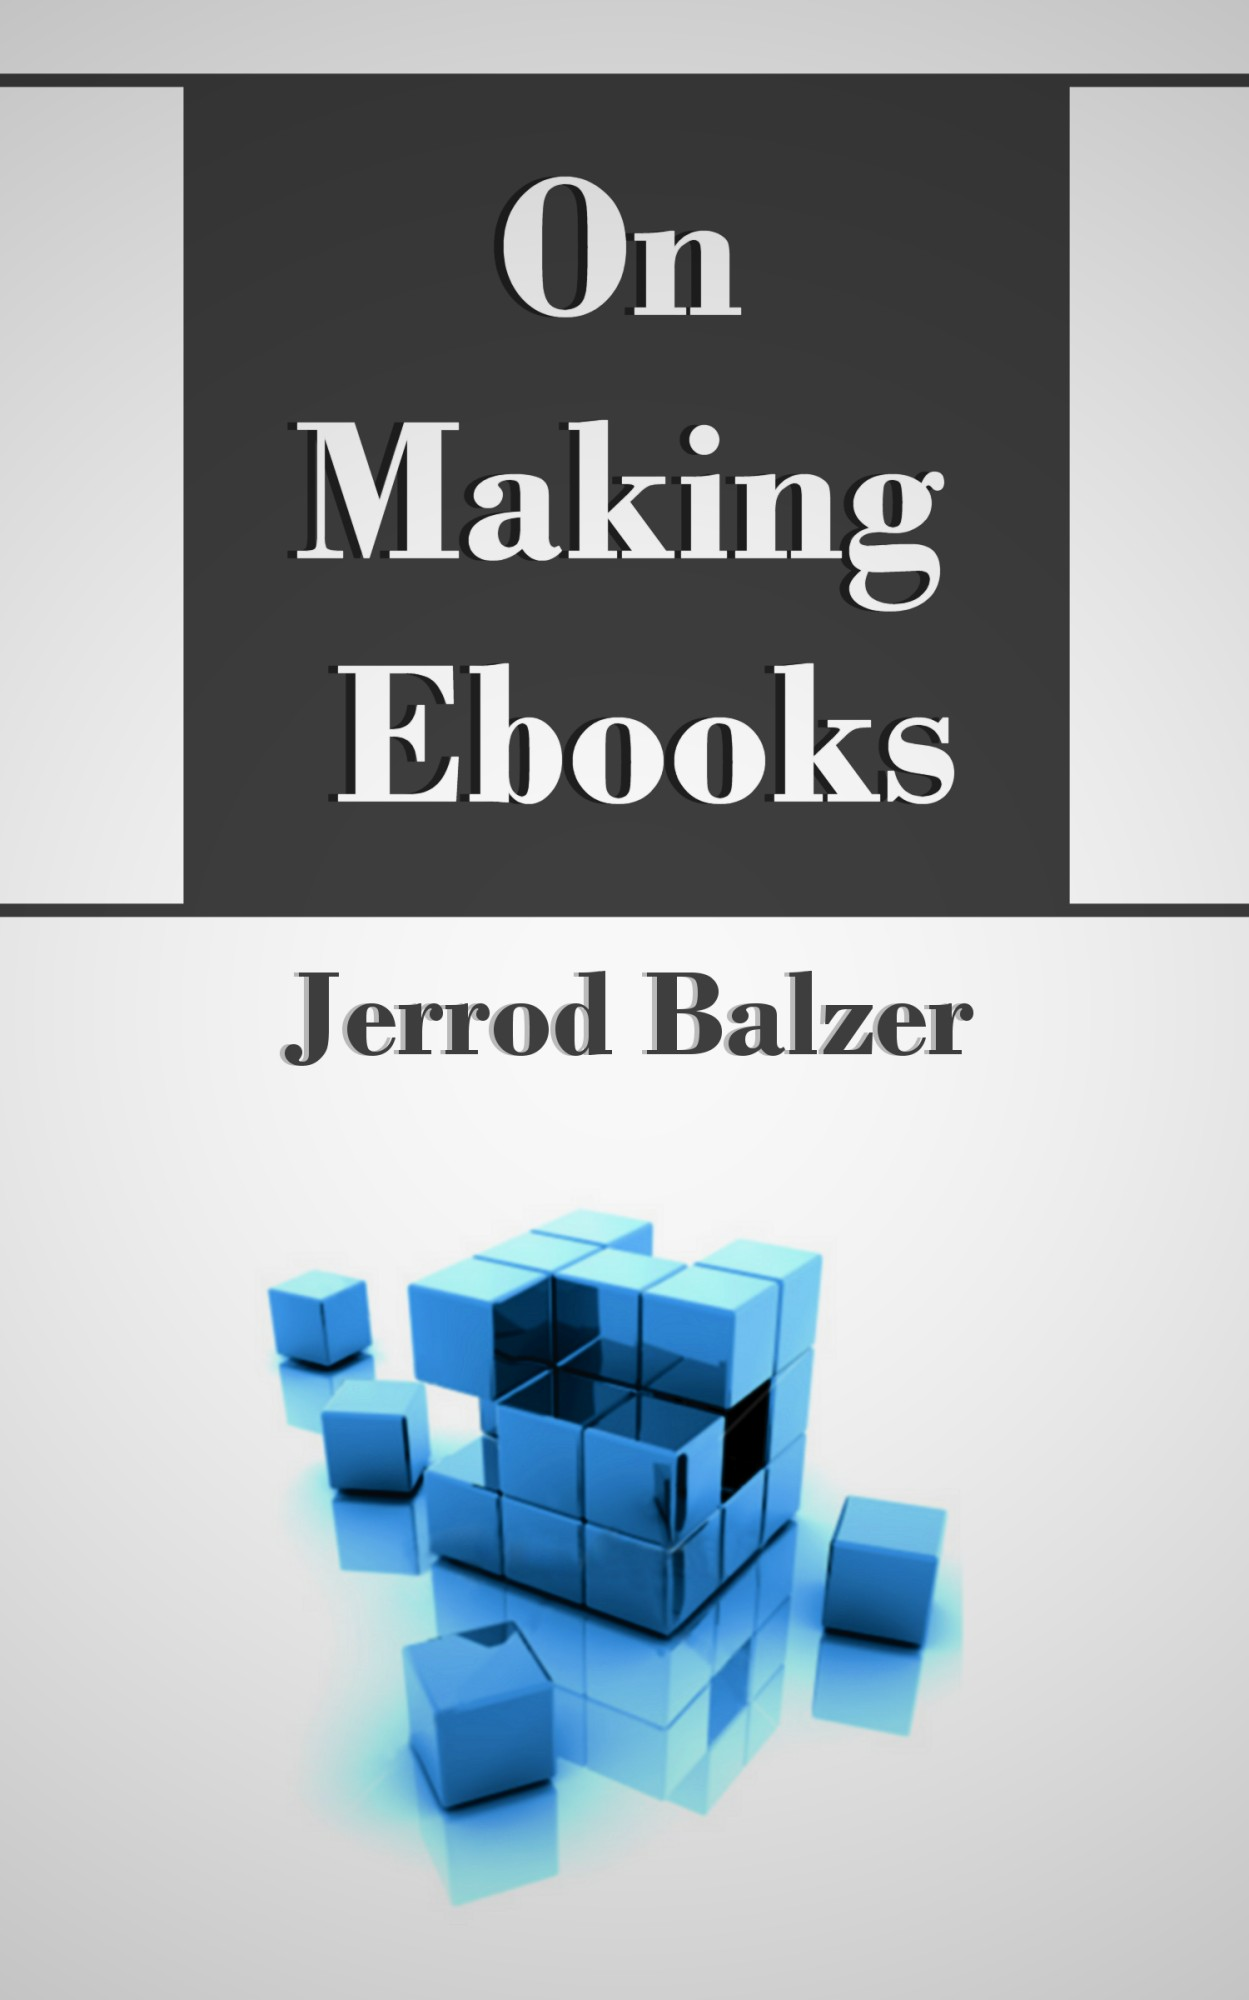 On Making Ebooks